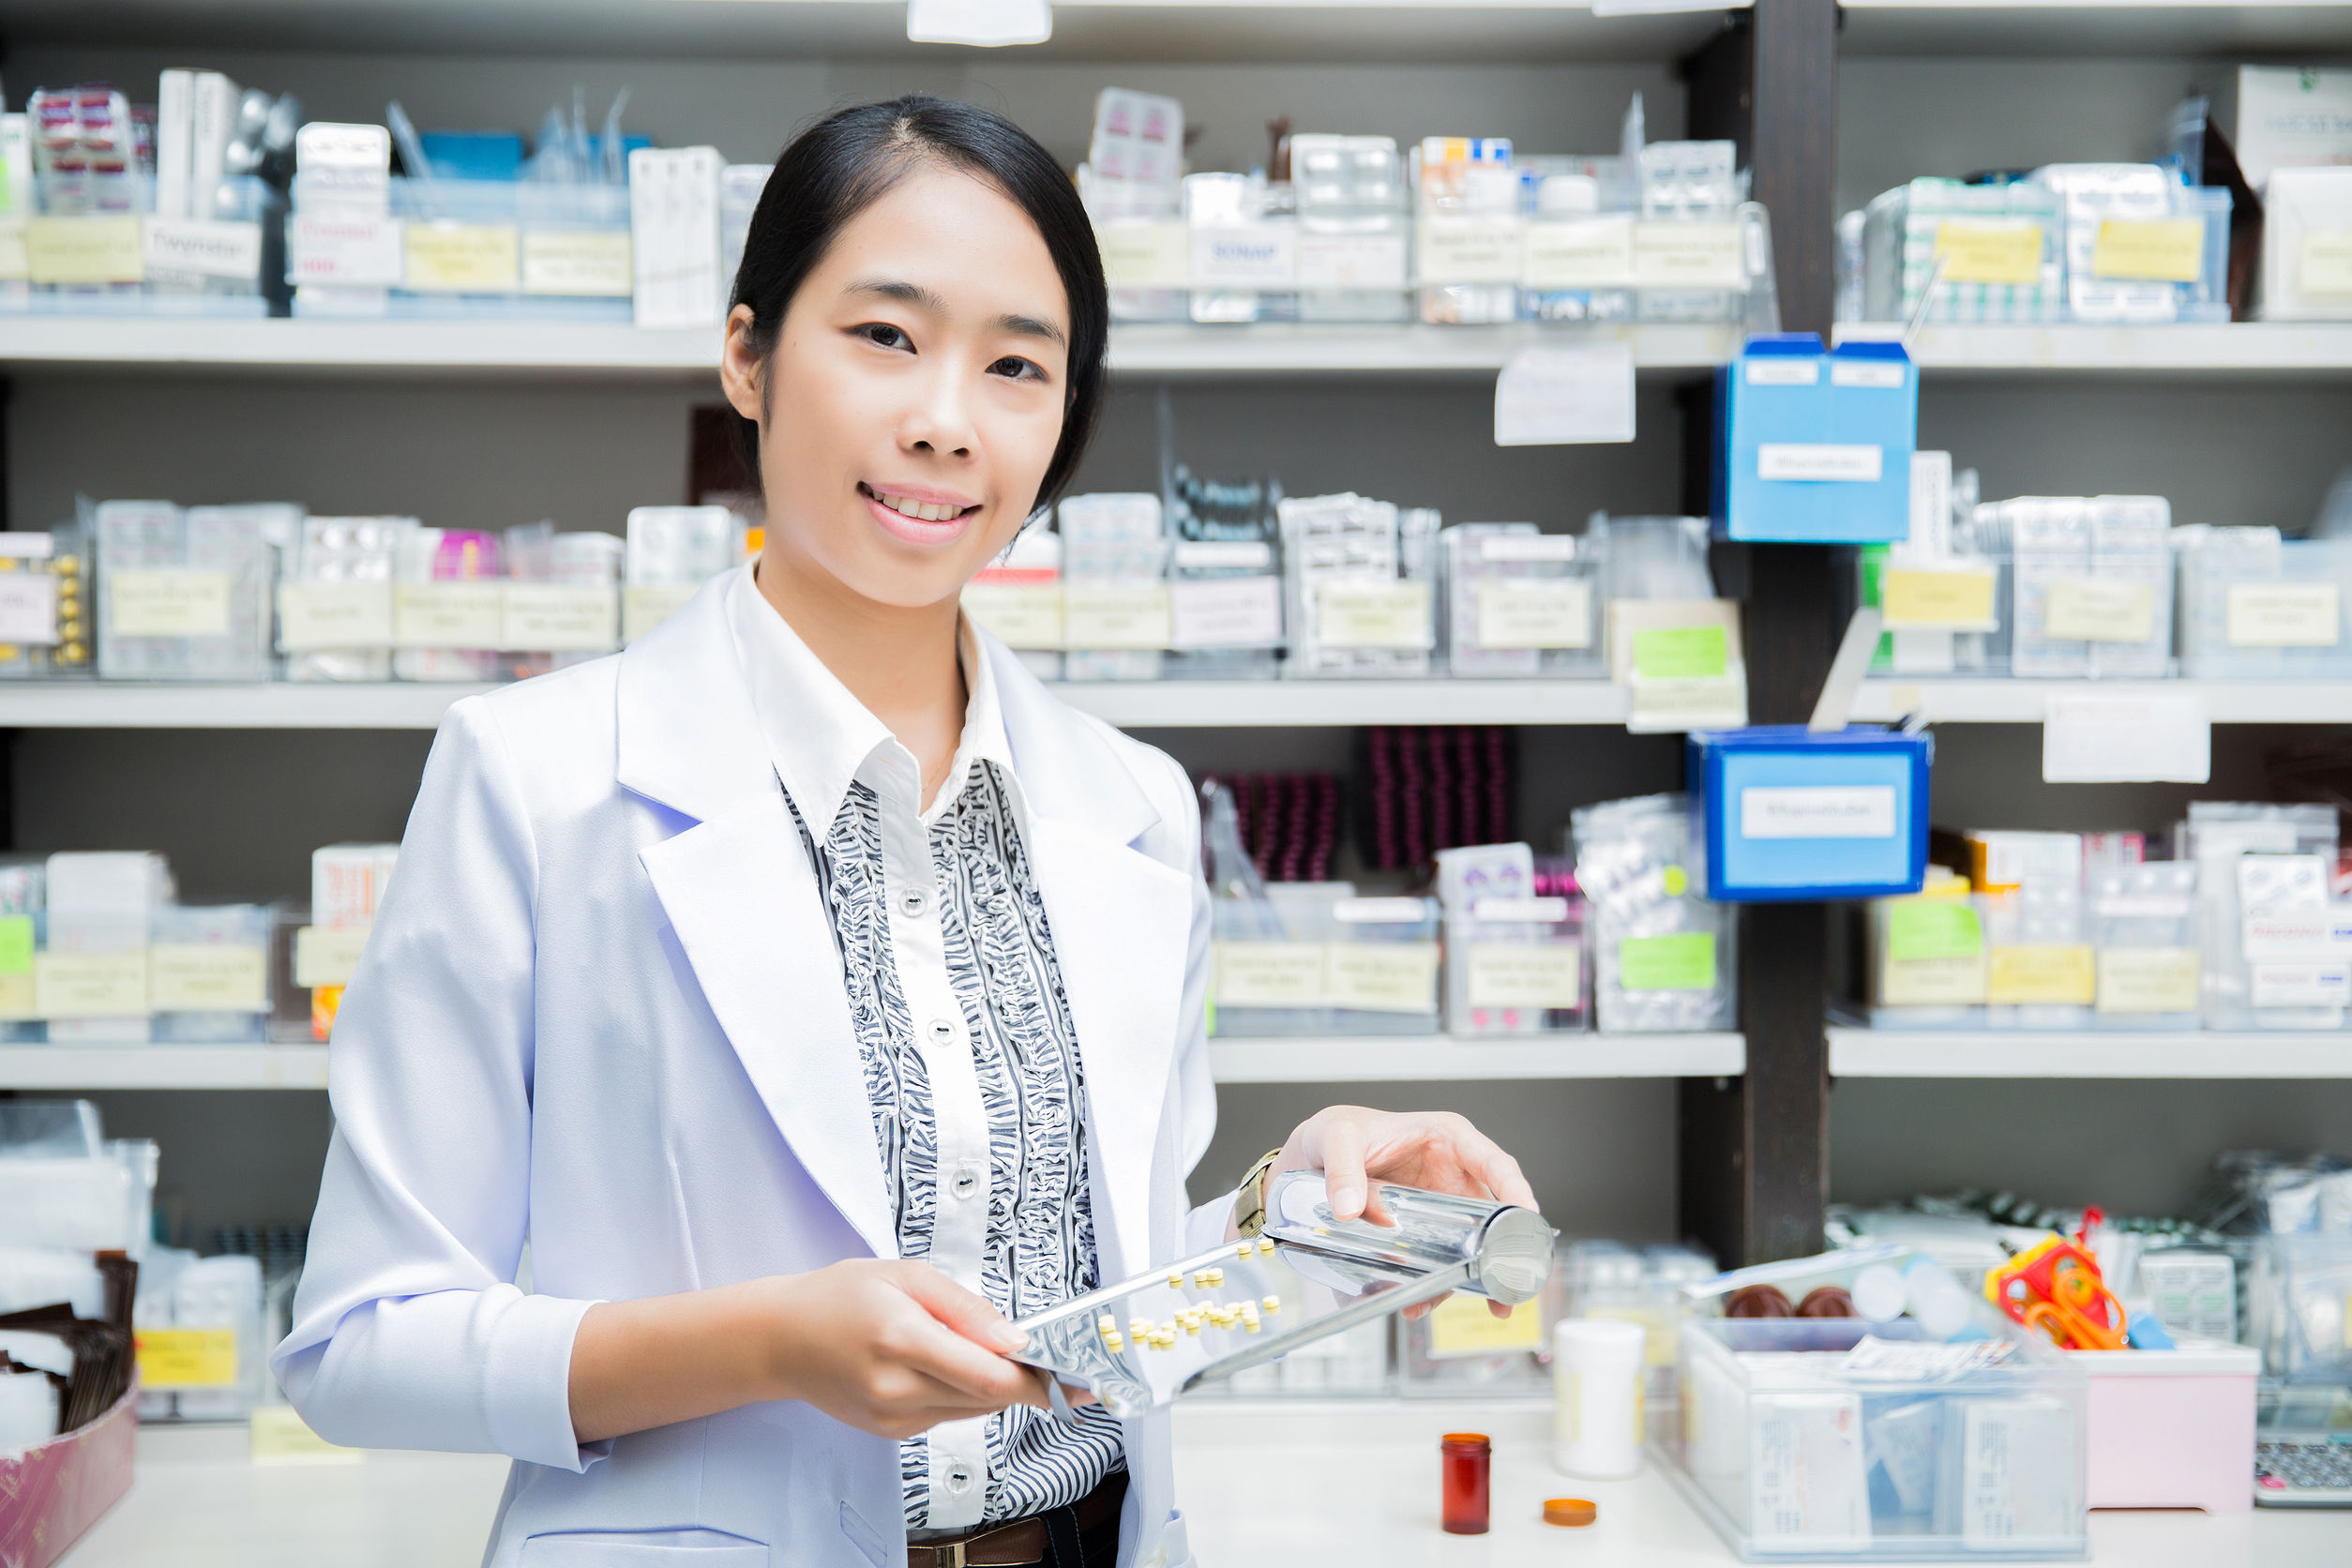 Importance of Pharmacy to Healthcare in Malaysia